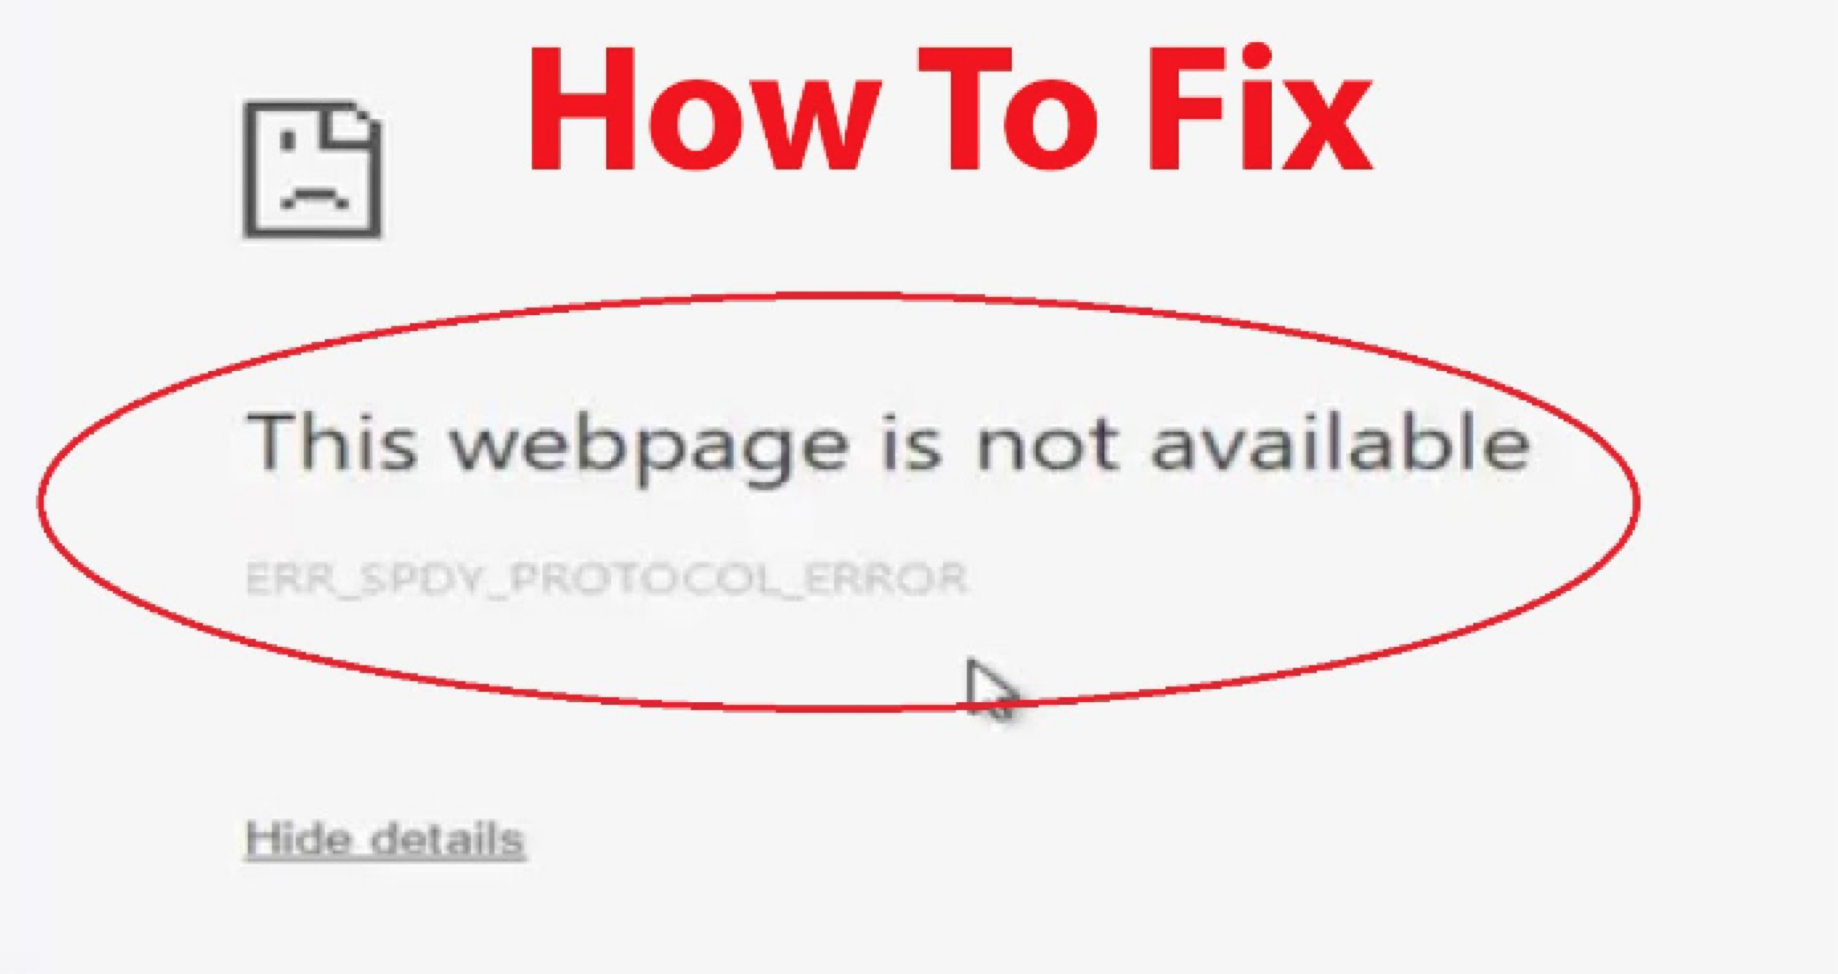 How To Fix ERR_SPDY_PROTOCOL_ERROR in Google Chrome - Good Tech Tricks